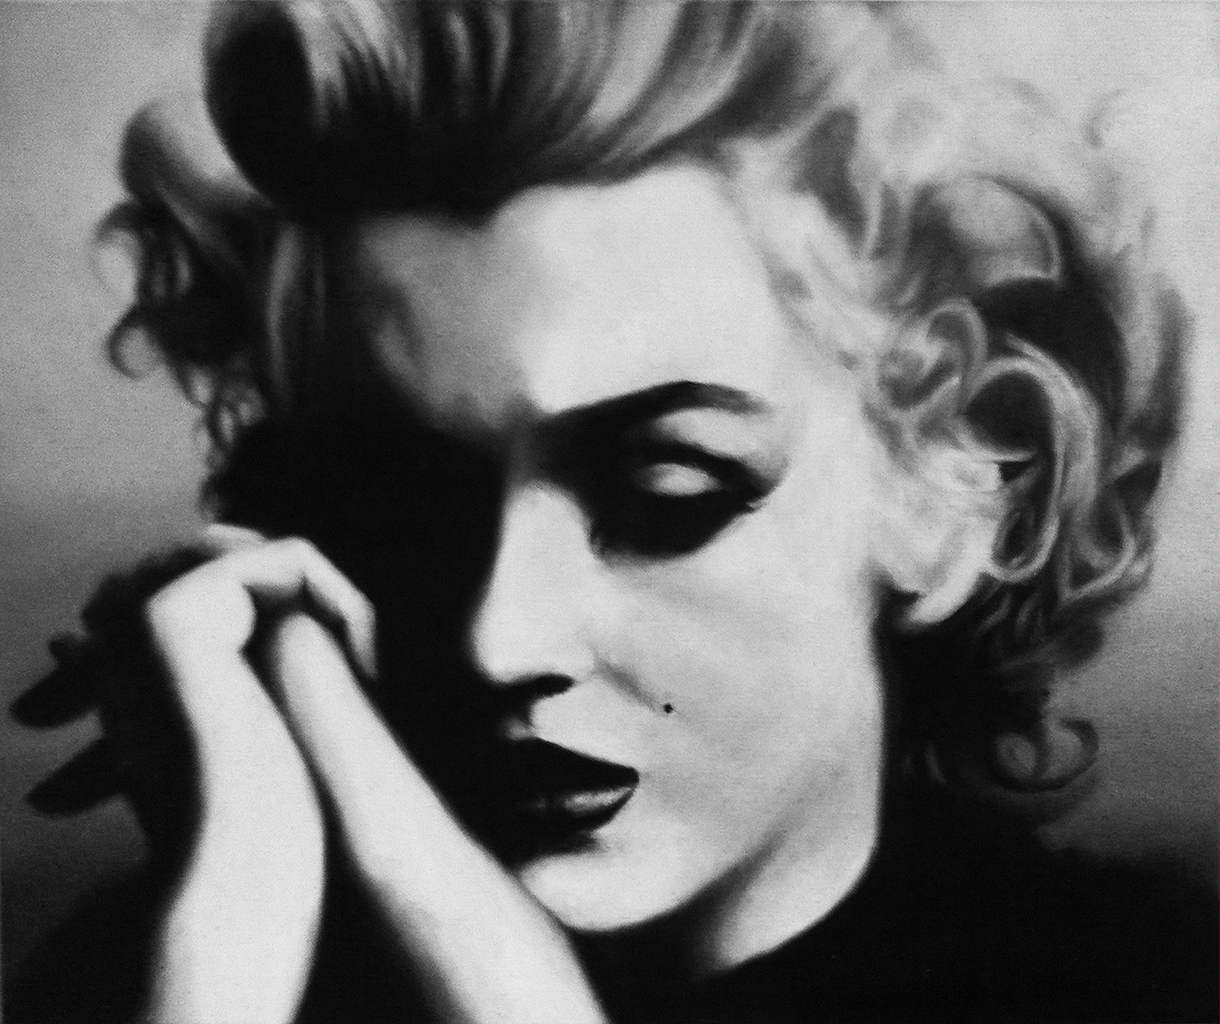 Marilyn Monroe – Oil on Canvas